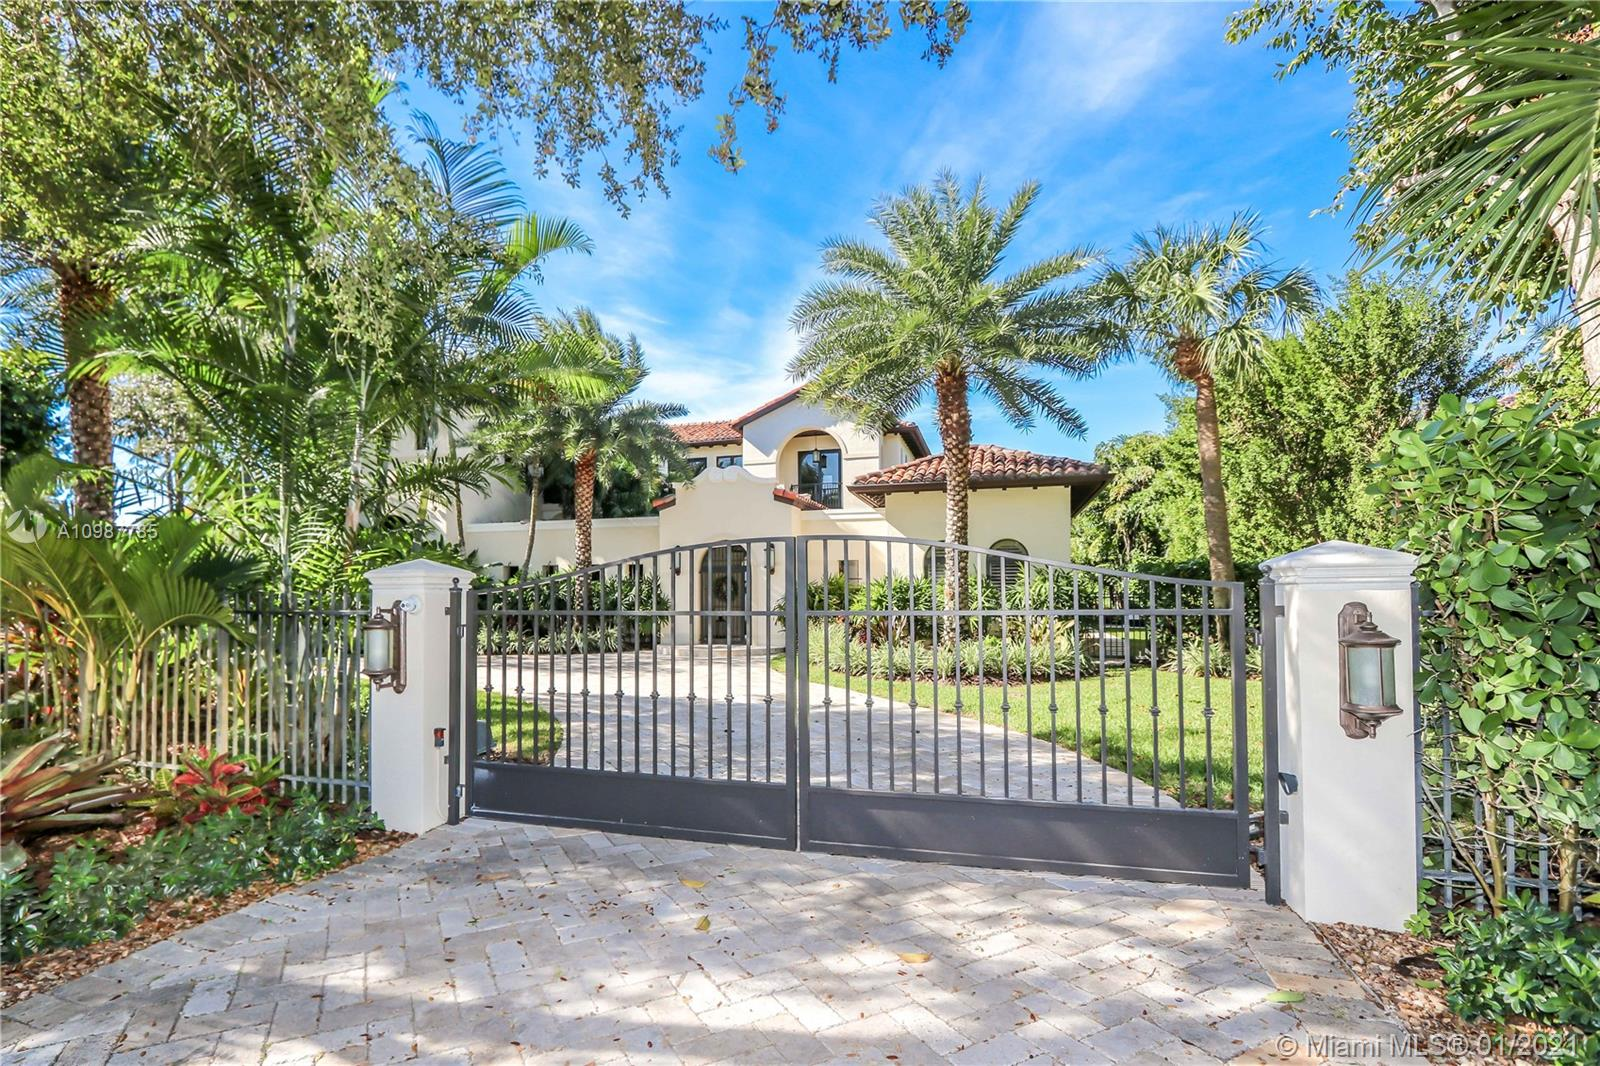 9580 SW 67th Ave, Pinecrest, Florida 33156, 6 Bedrooms Bedrooms, ,9 BathroomsBathrooms,Residential,For Sale,9580 SW 67th Ave,A10987785